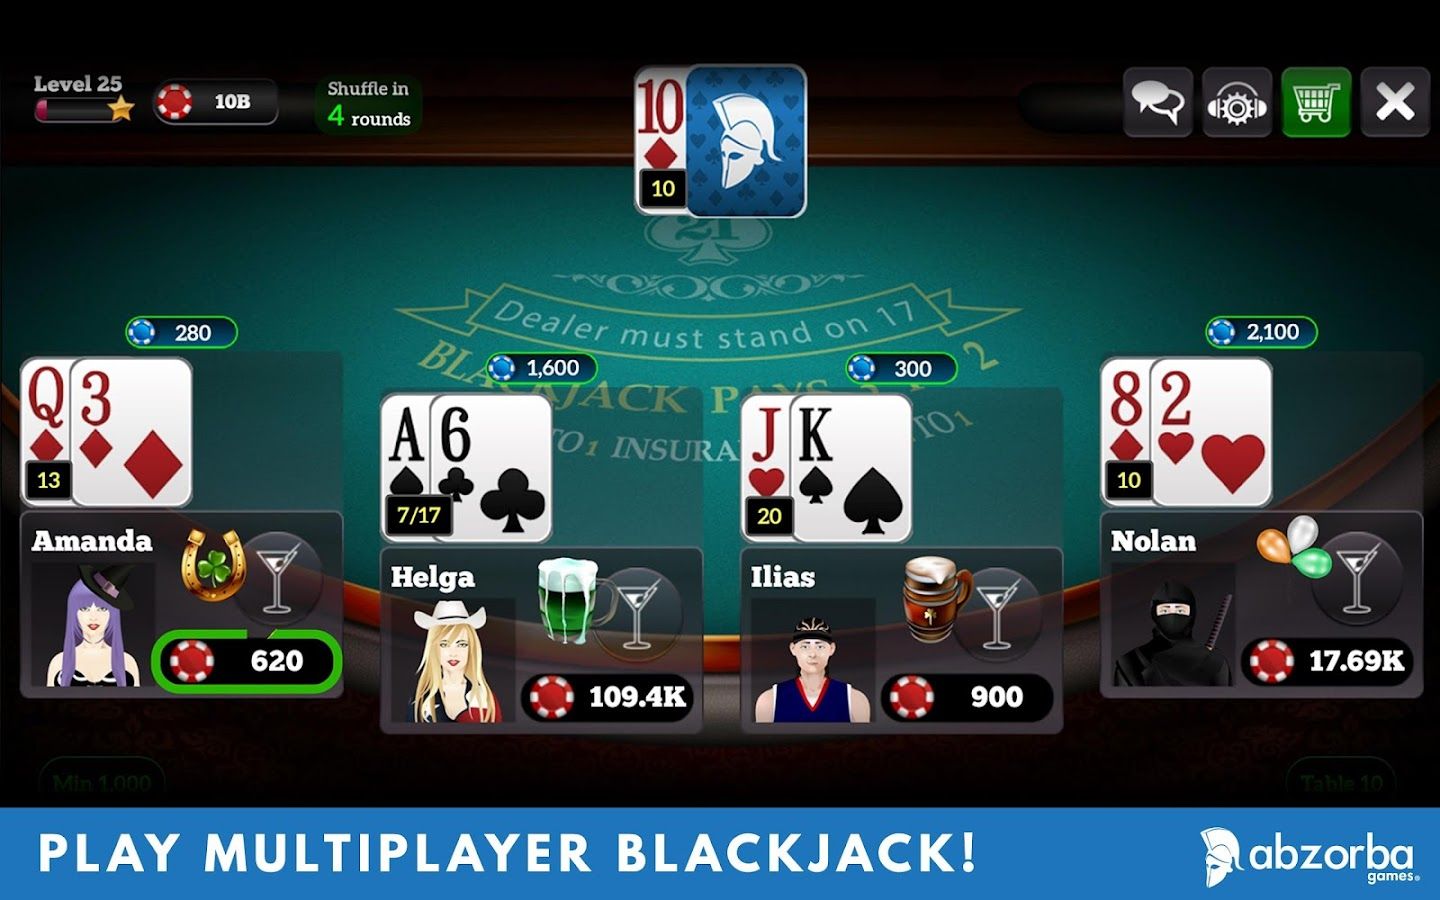 how to play 21 + 3 blackjack